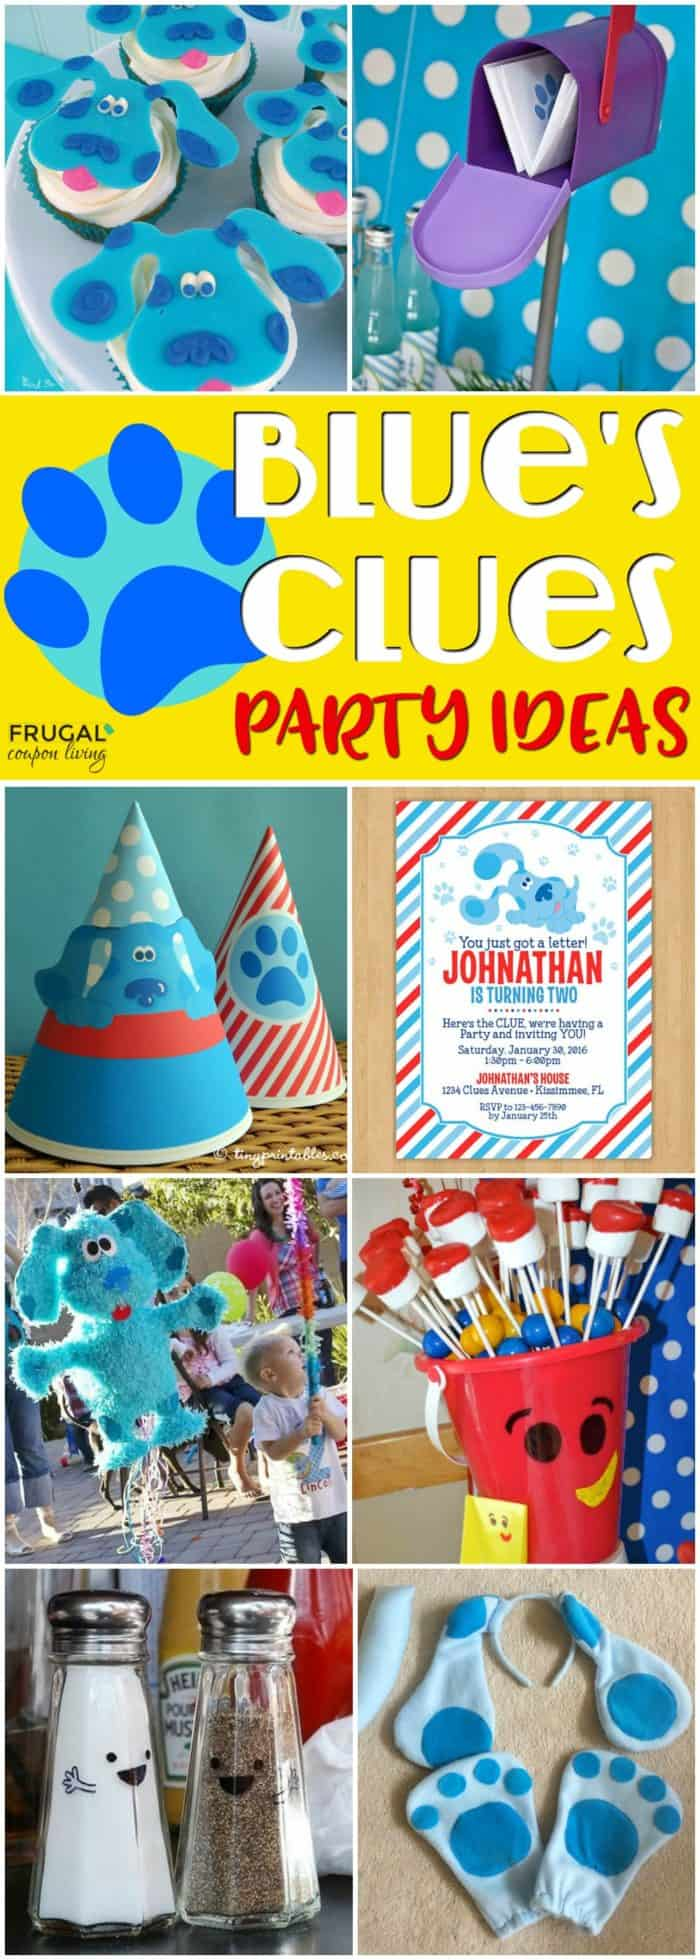 Blues Clues Party Ideas for Your Childs Themed Birthday Party